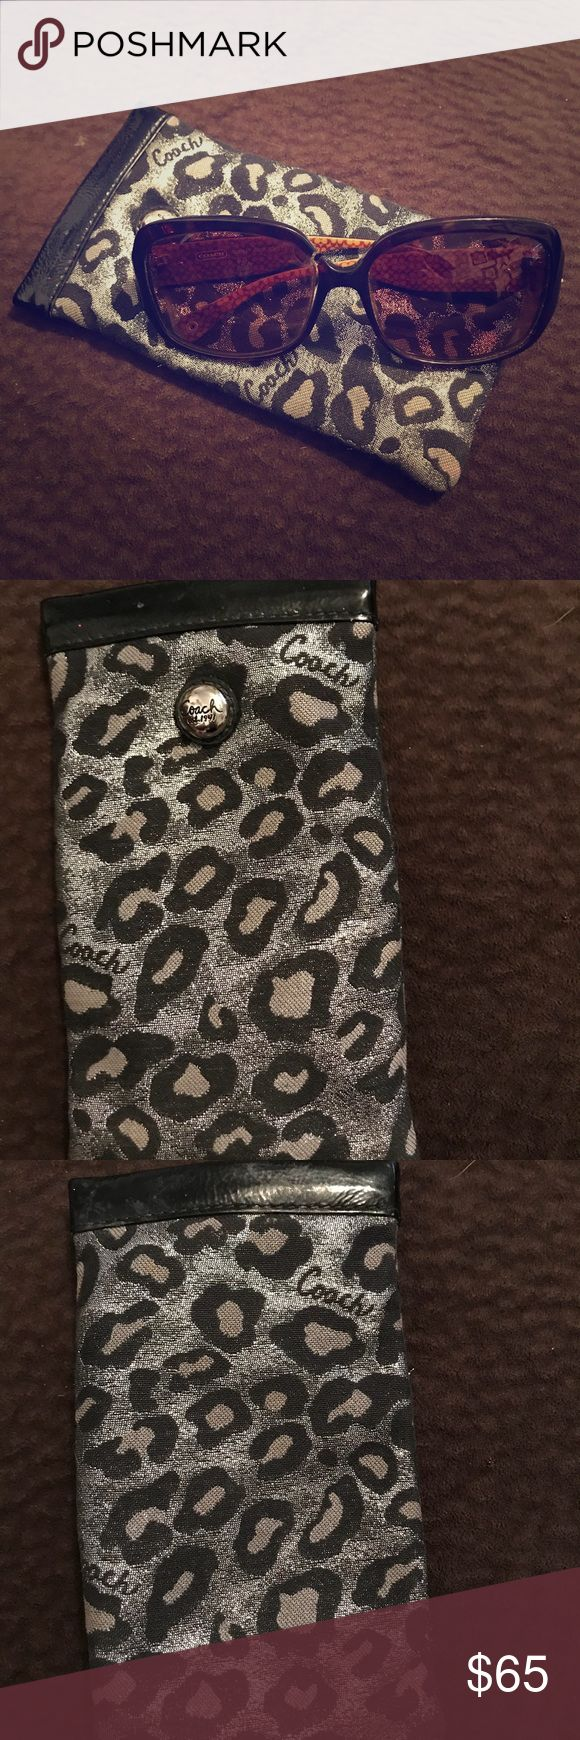 📍Authentic Coach Sunglasses&Coach Sunglasses Case Authentic Coach Sunglasses & Coach Sunglasses Case.  Large frame Sunglasses with no scratches on the lenses.  In great condition.  Authentic Coach Sunglasses Case Made out of leather Cheetah pattern In perfect condition   Make me a counter offer! Coach Accessories Sunglasses